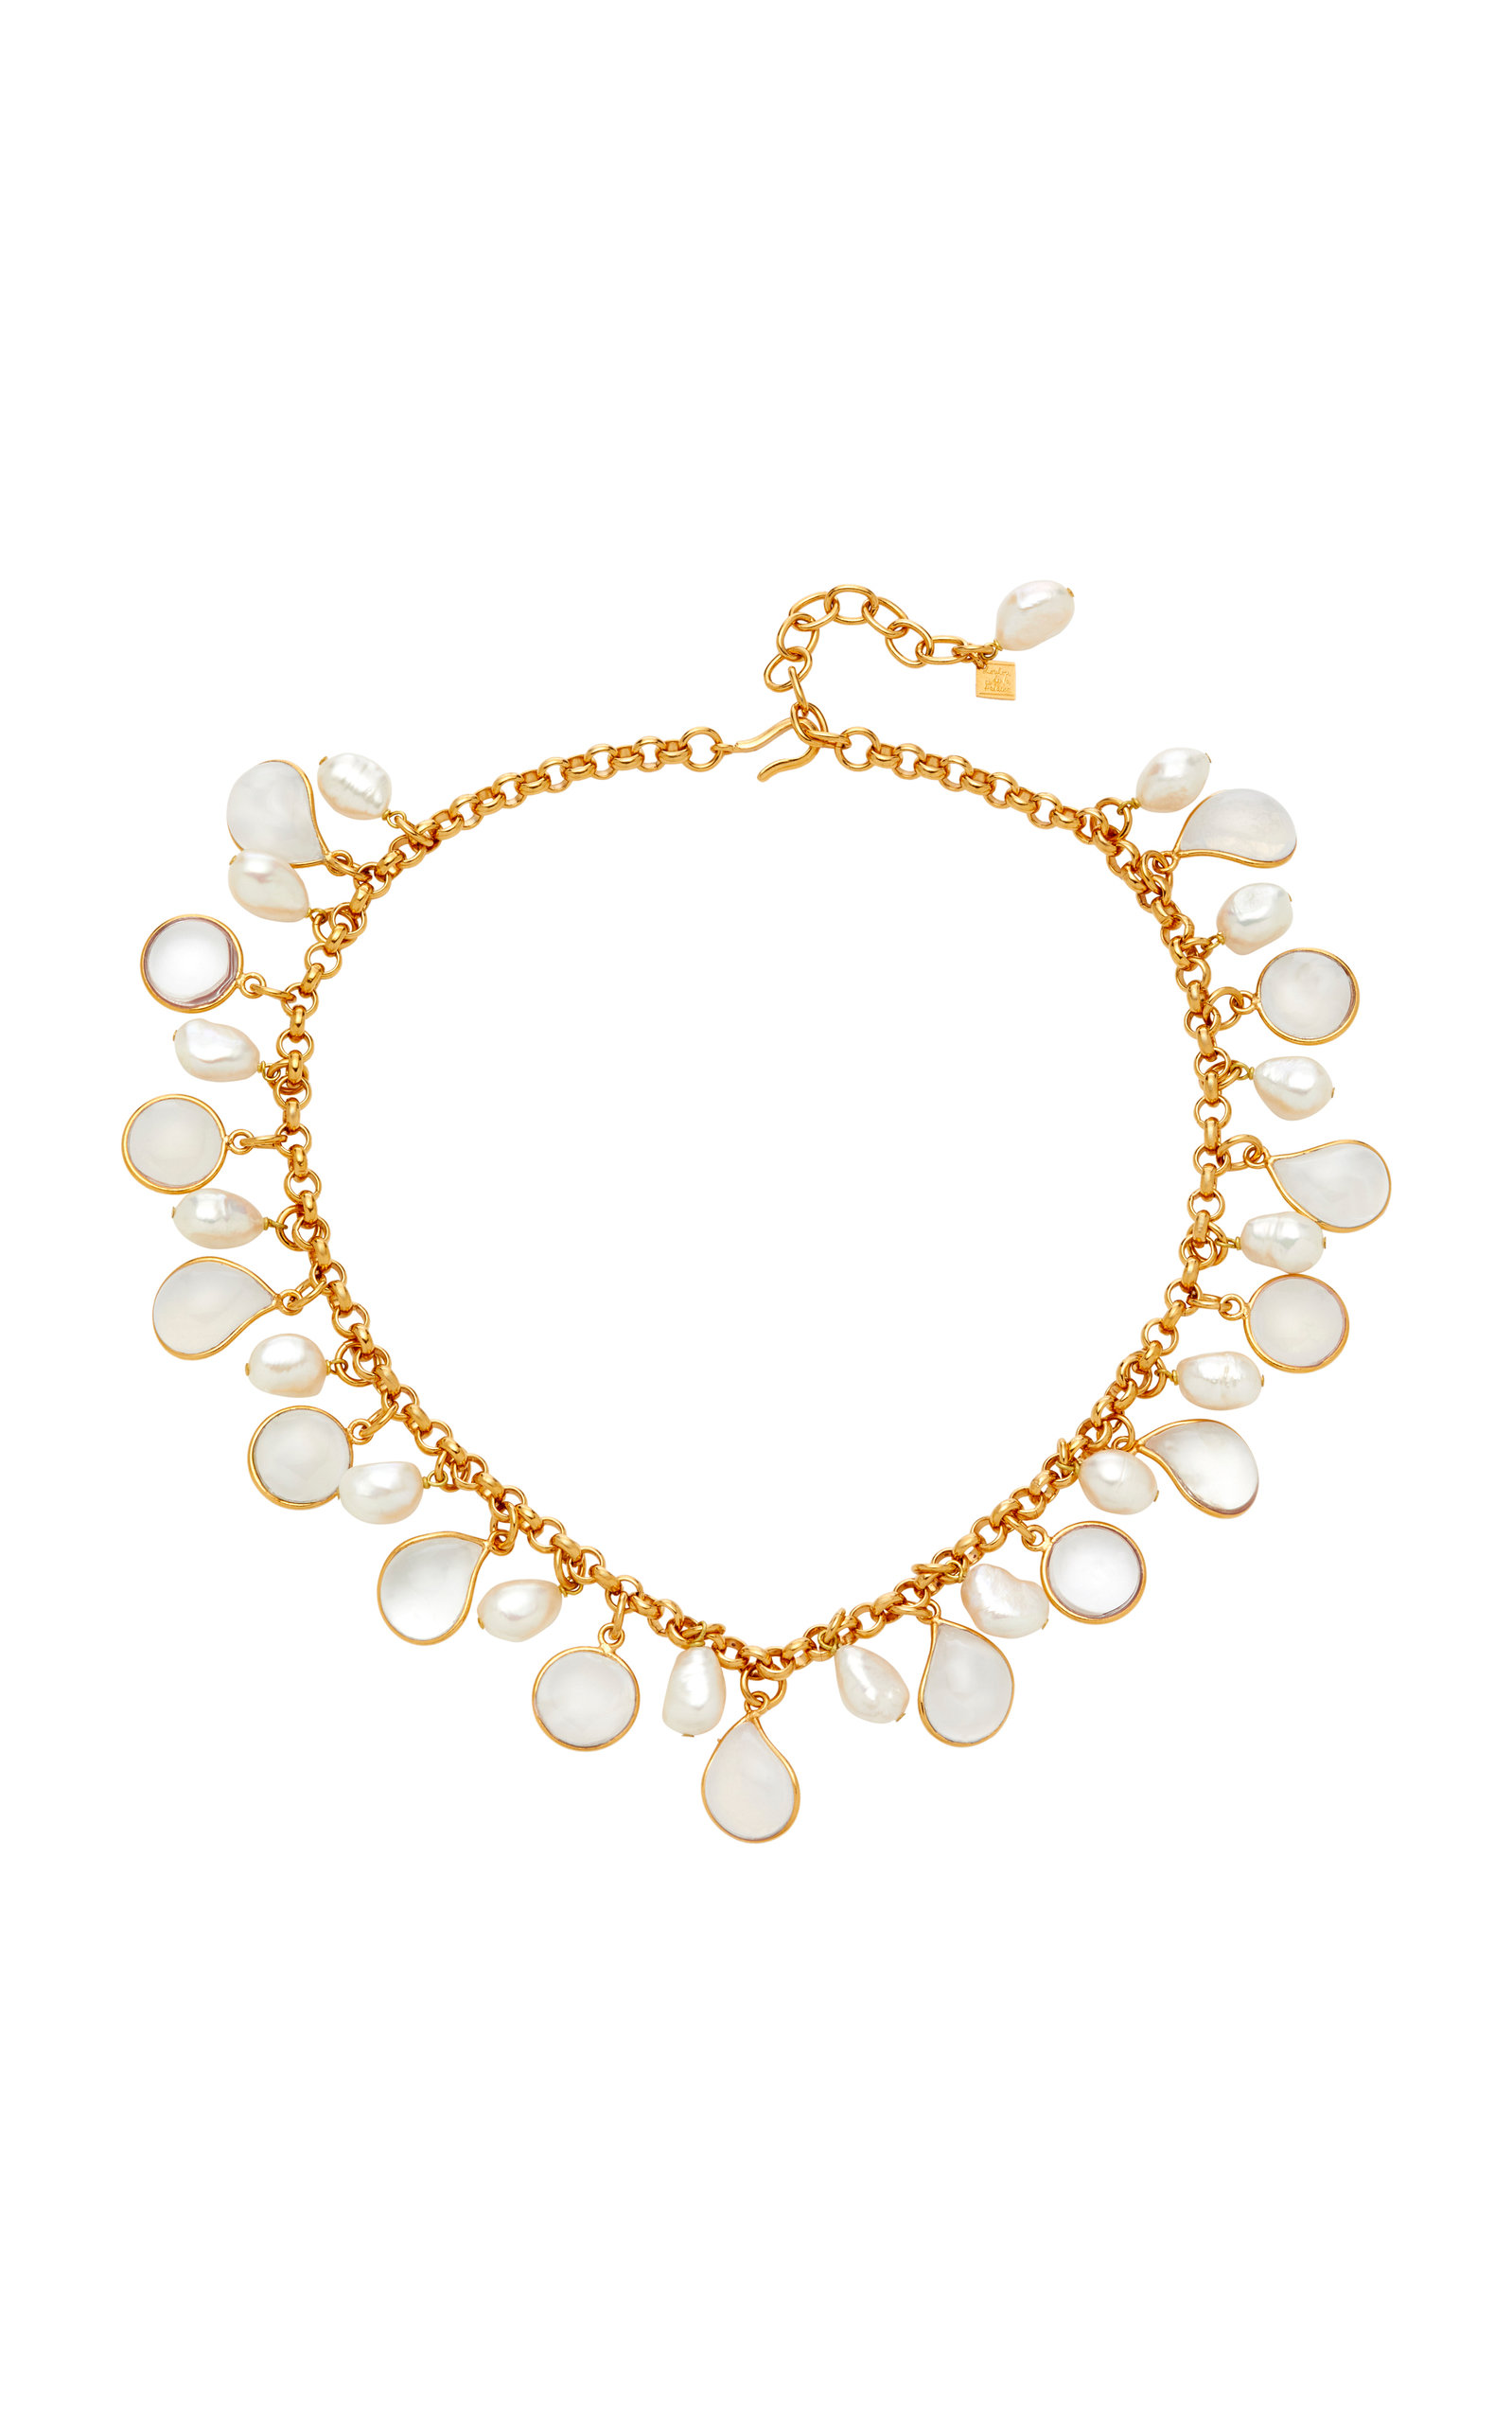 LOULOU DE LA FALAISE 24K GOLD-PLATED STONE AND PEARL NECKLACE